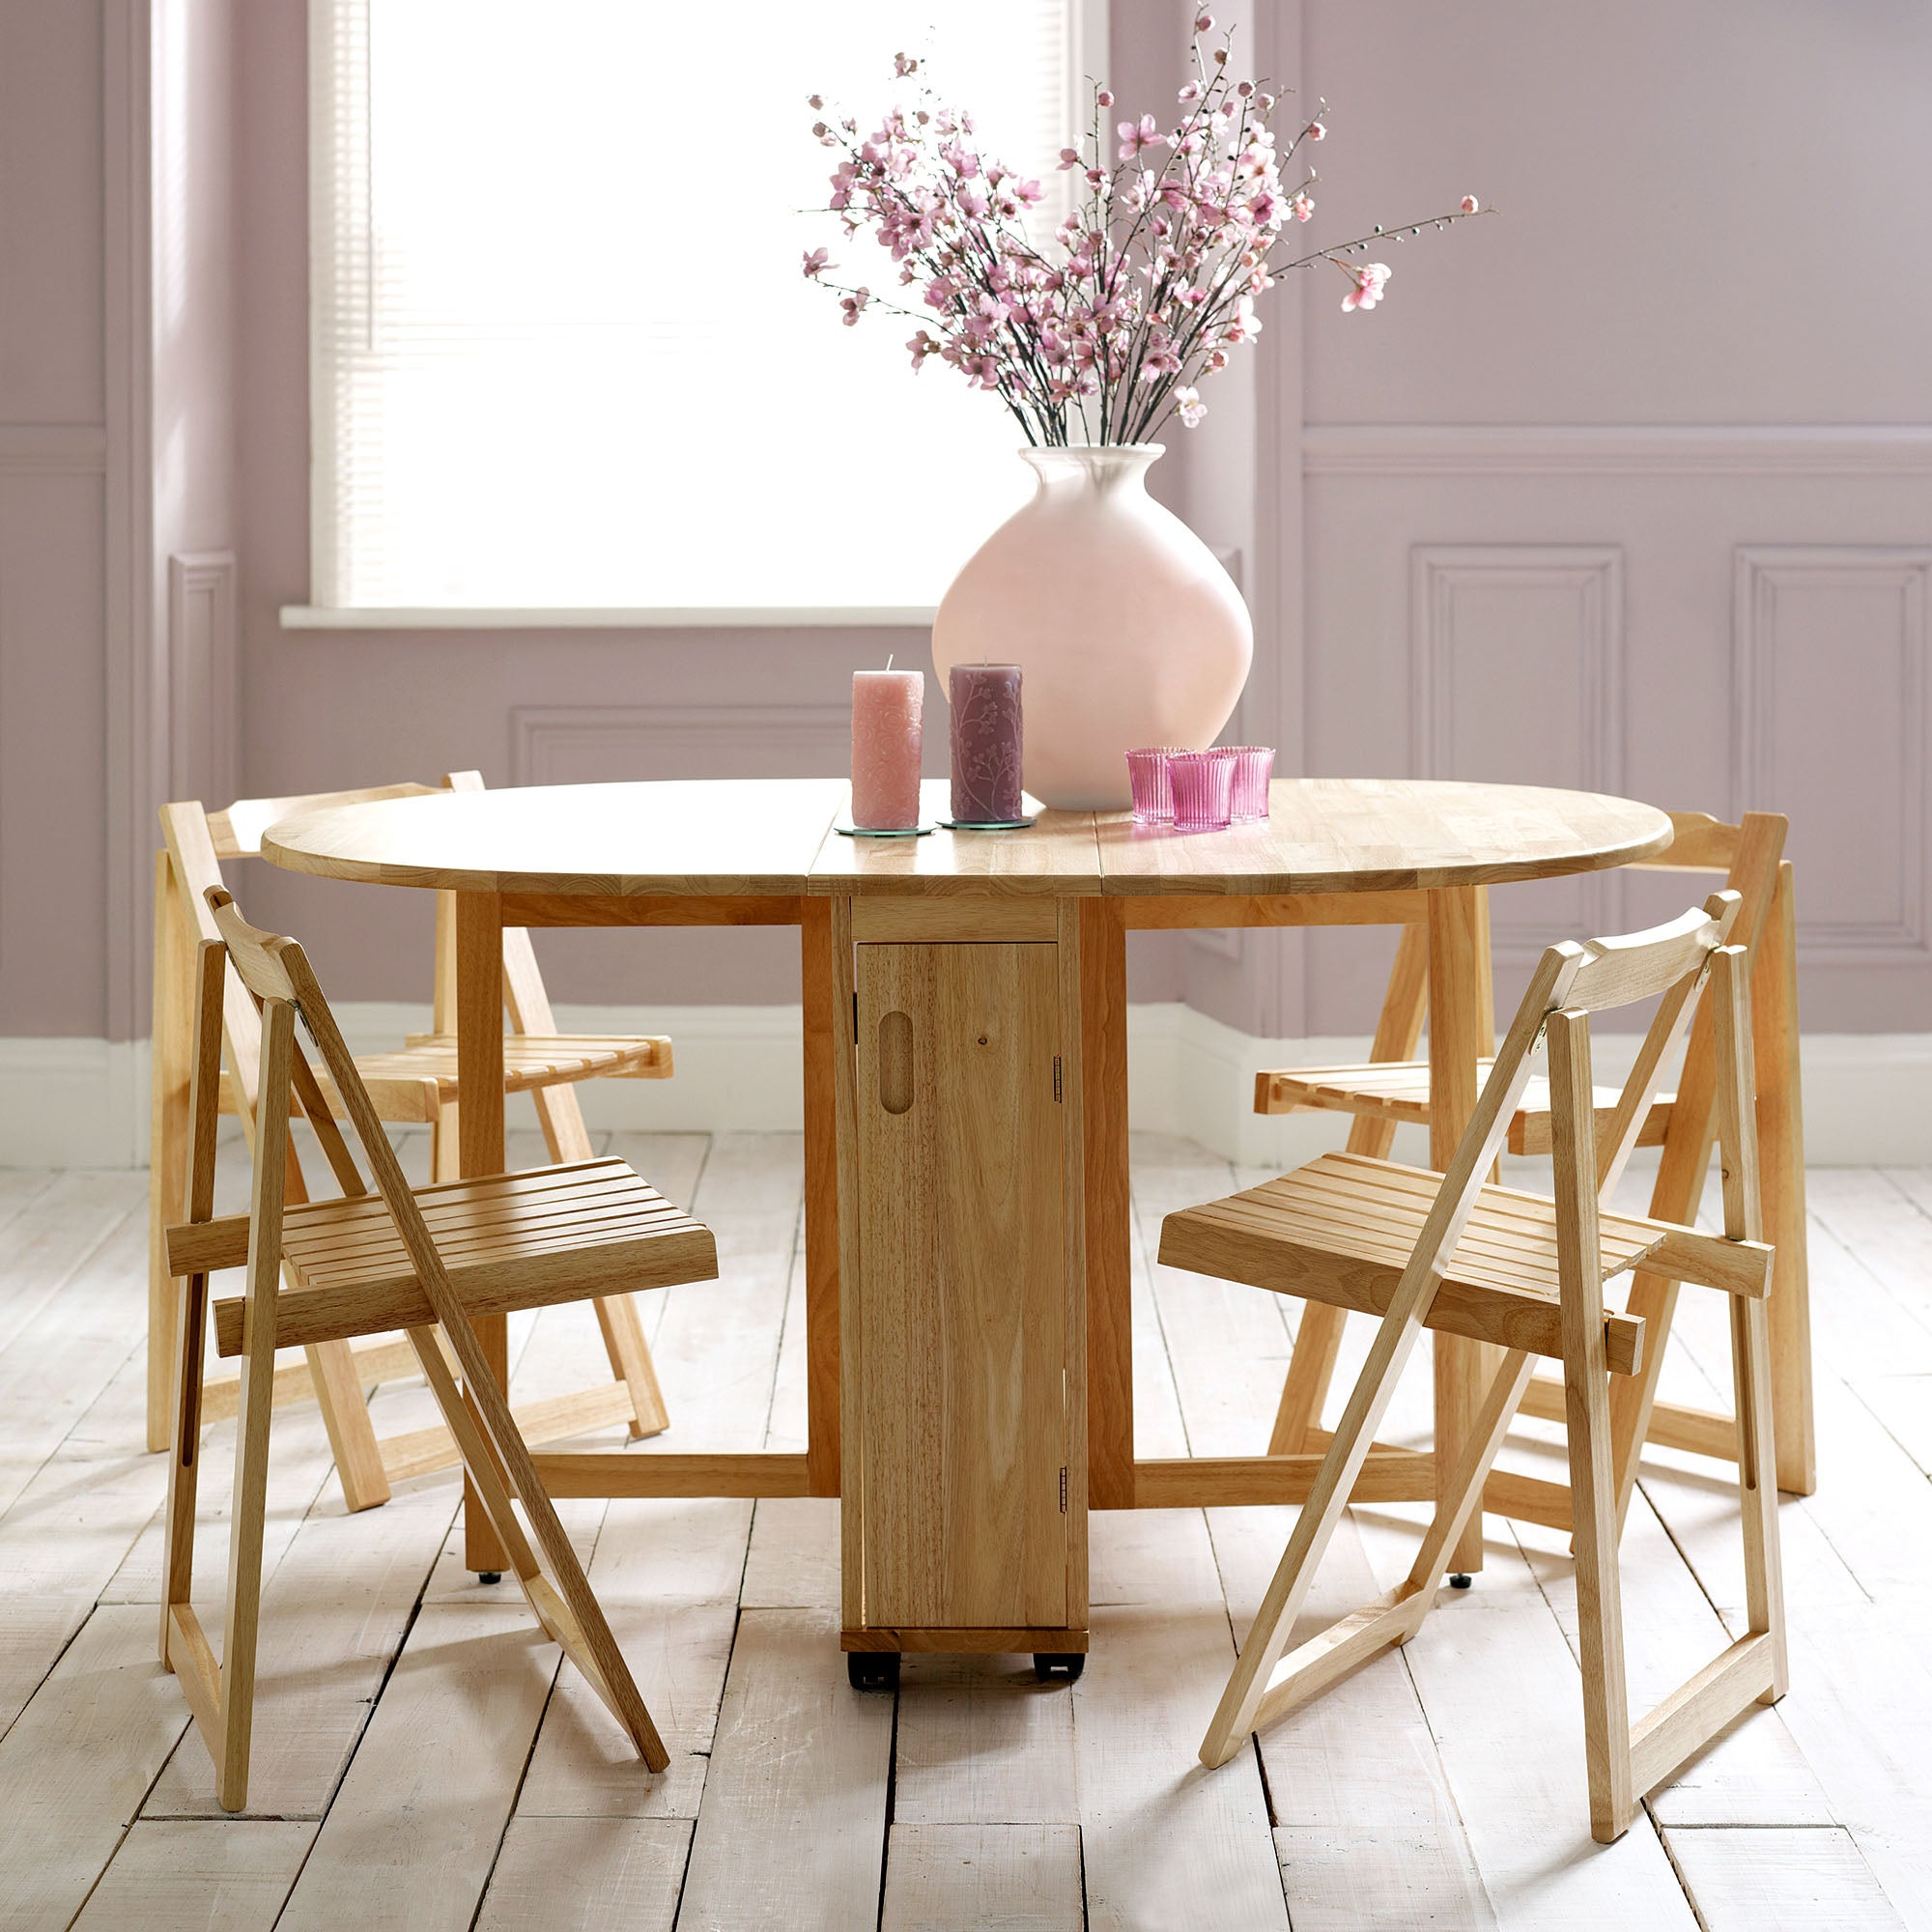 Rubberwood Butterfly Table with 4 Chairs